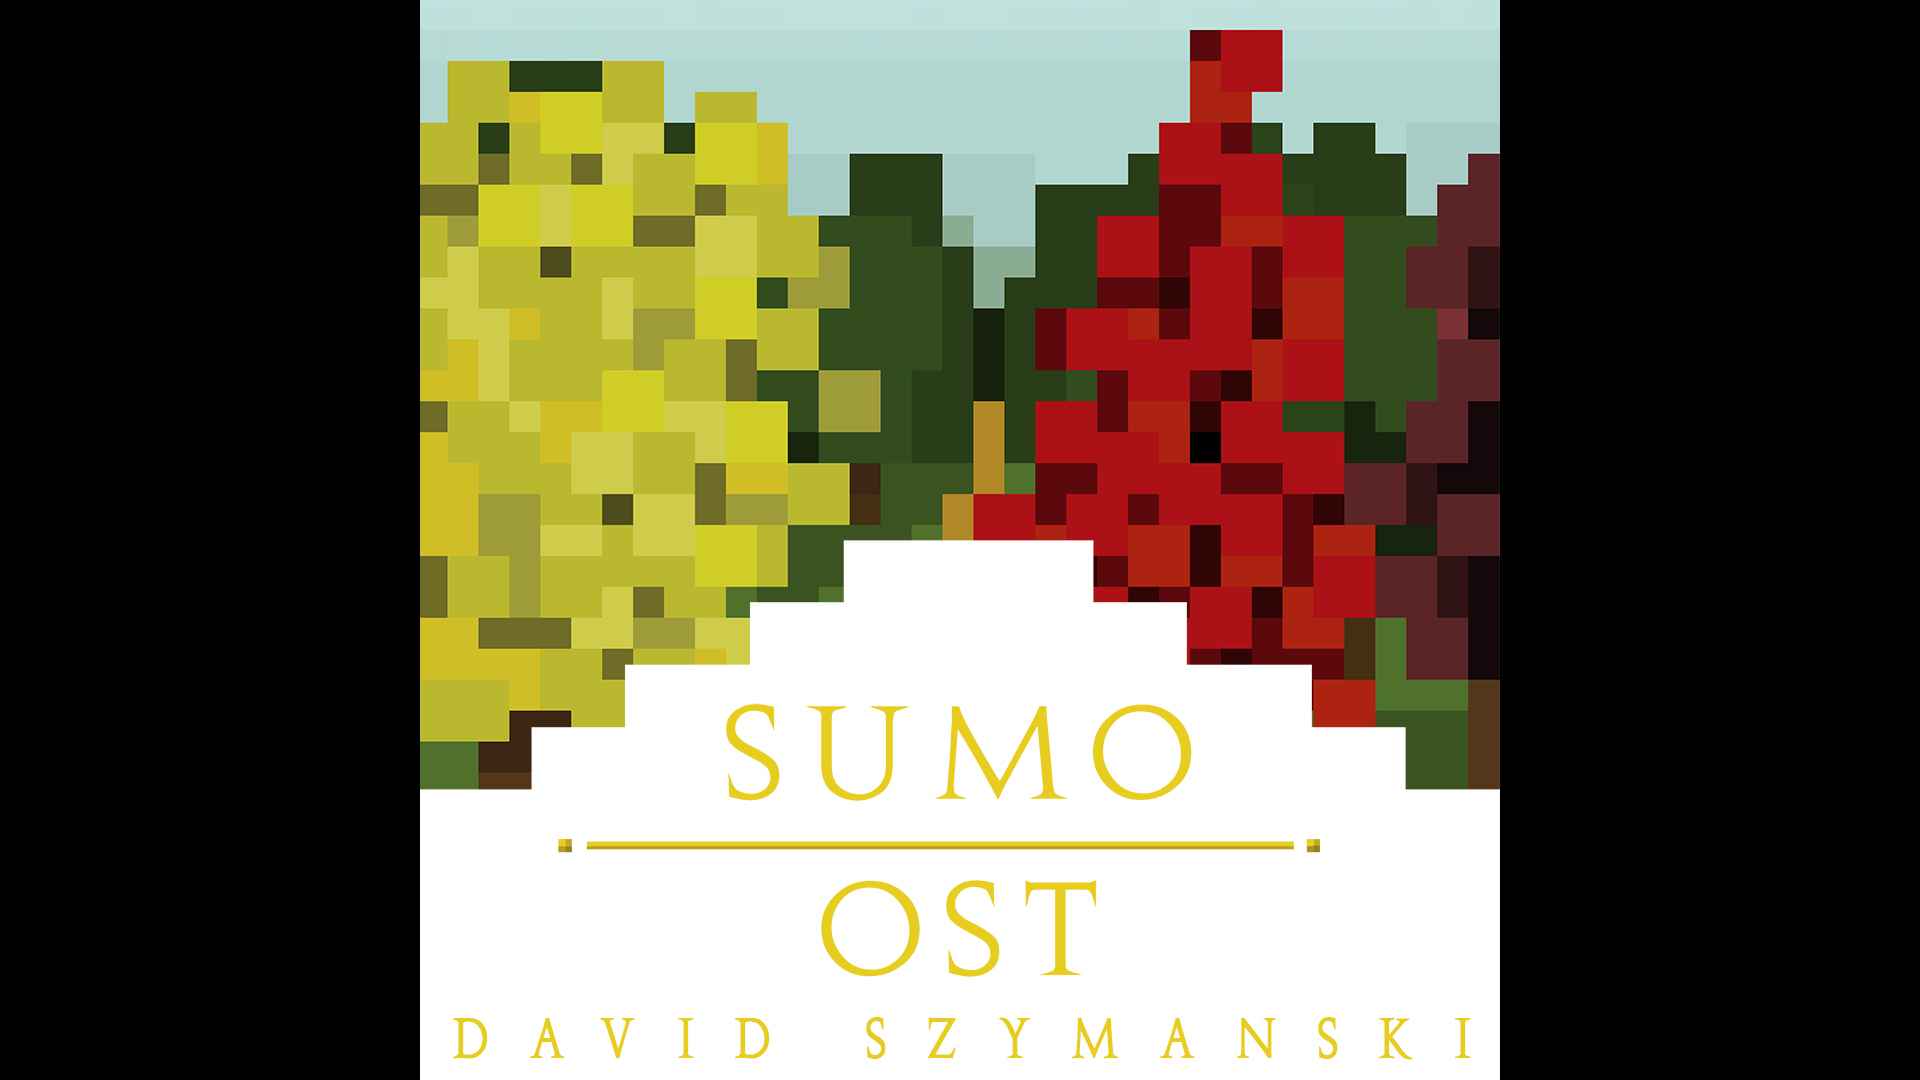 Sumo Revise OST screenshot